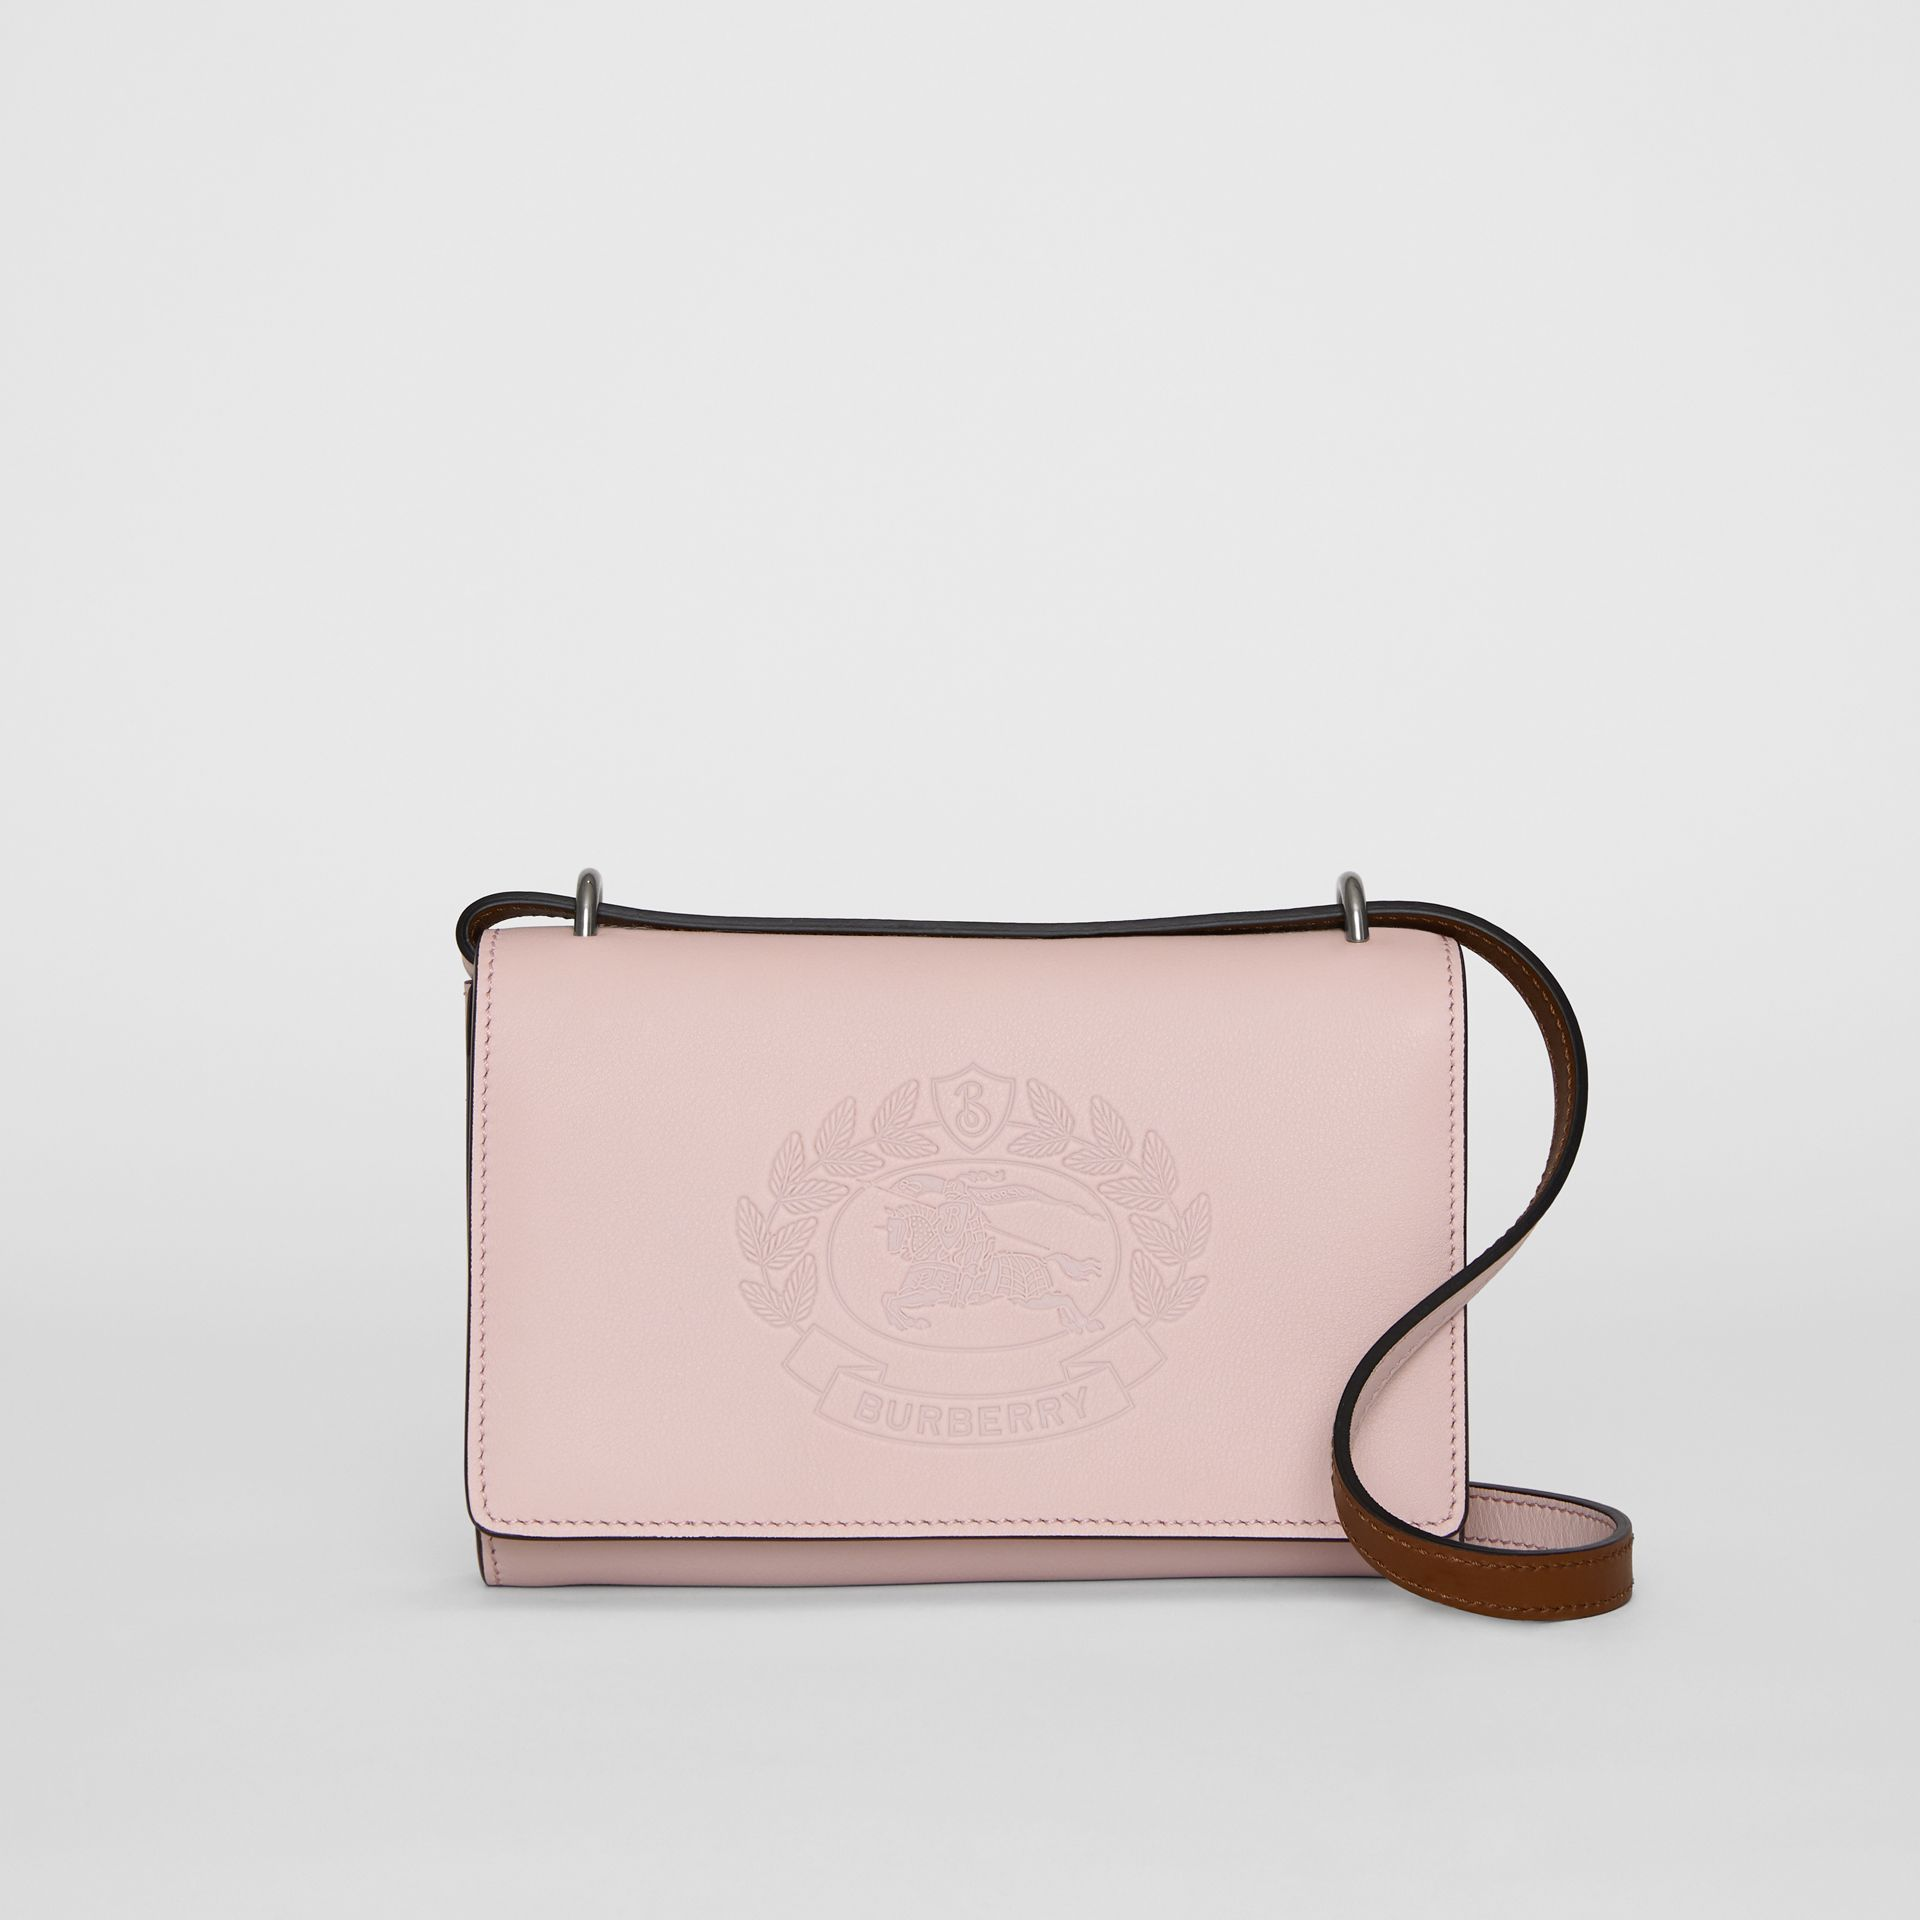 Embossed Crest Leather Wallet with Detachable Strap in Chalk Pink - Women | Burberry United Kingdom - gallery image 0